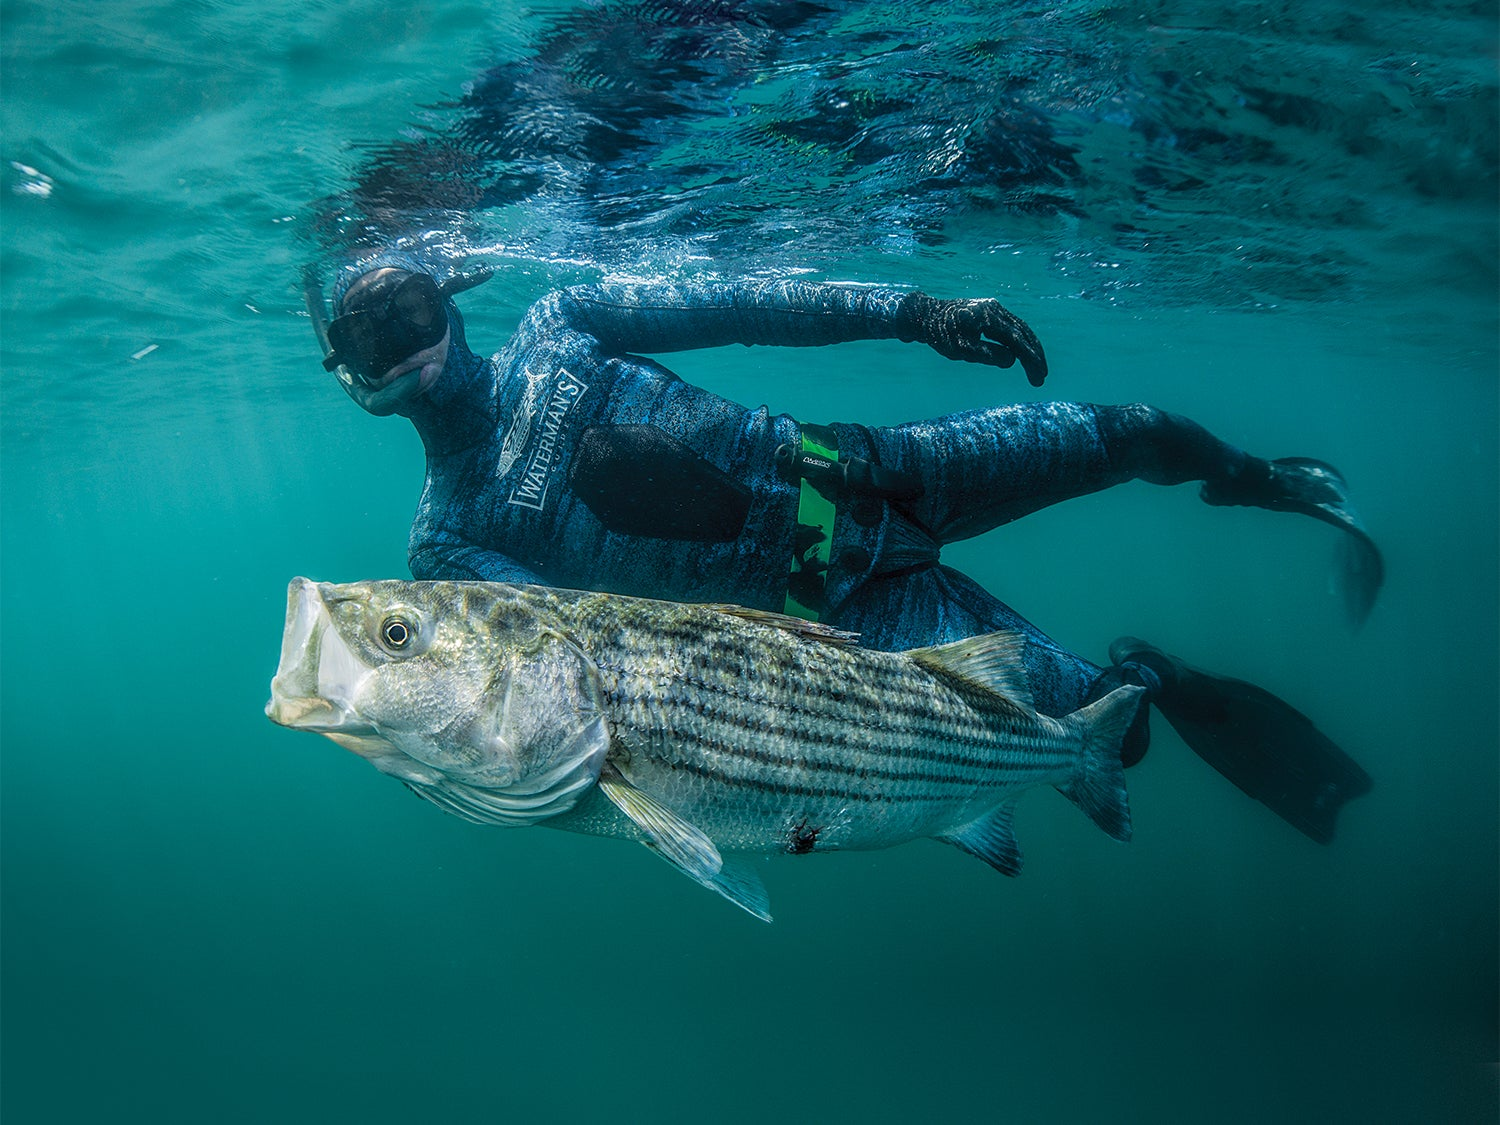 A spearfisher hauling a striped bass through the water.